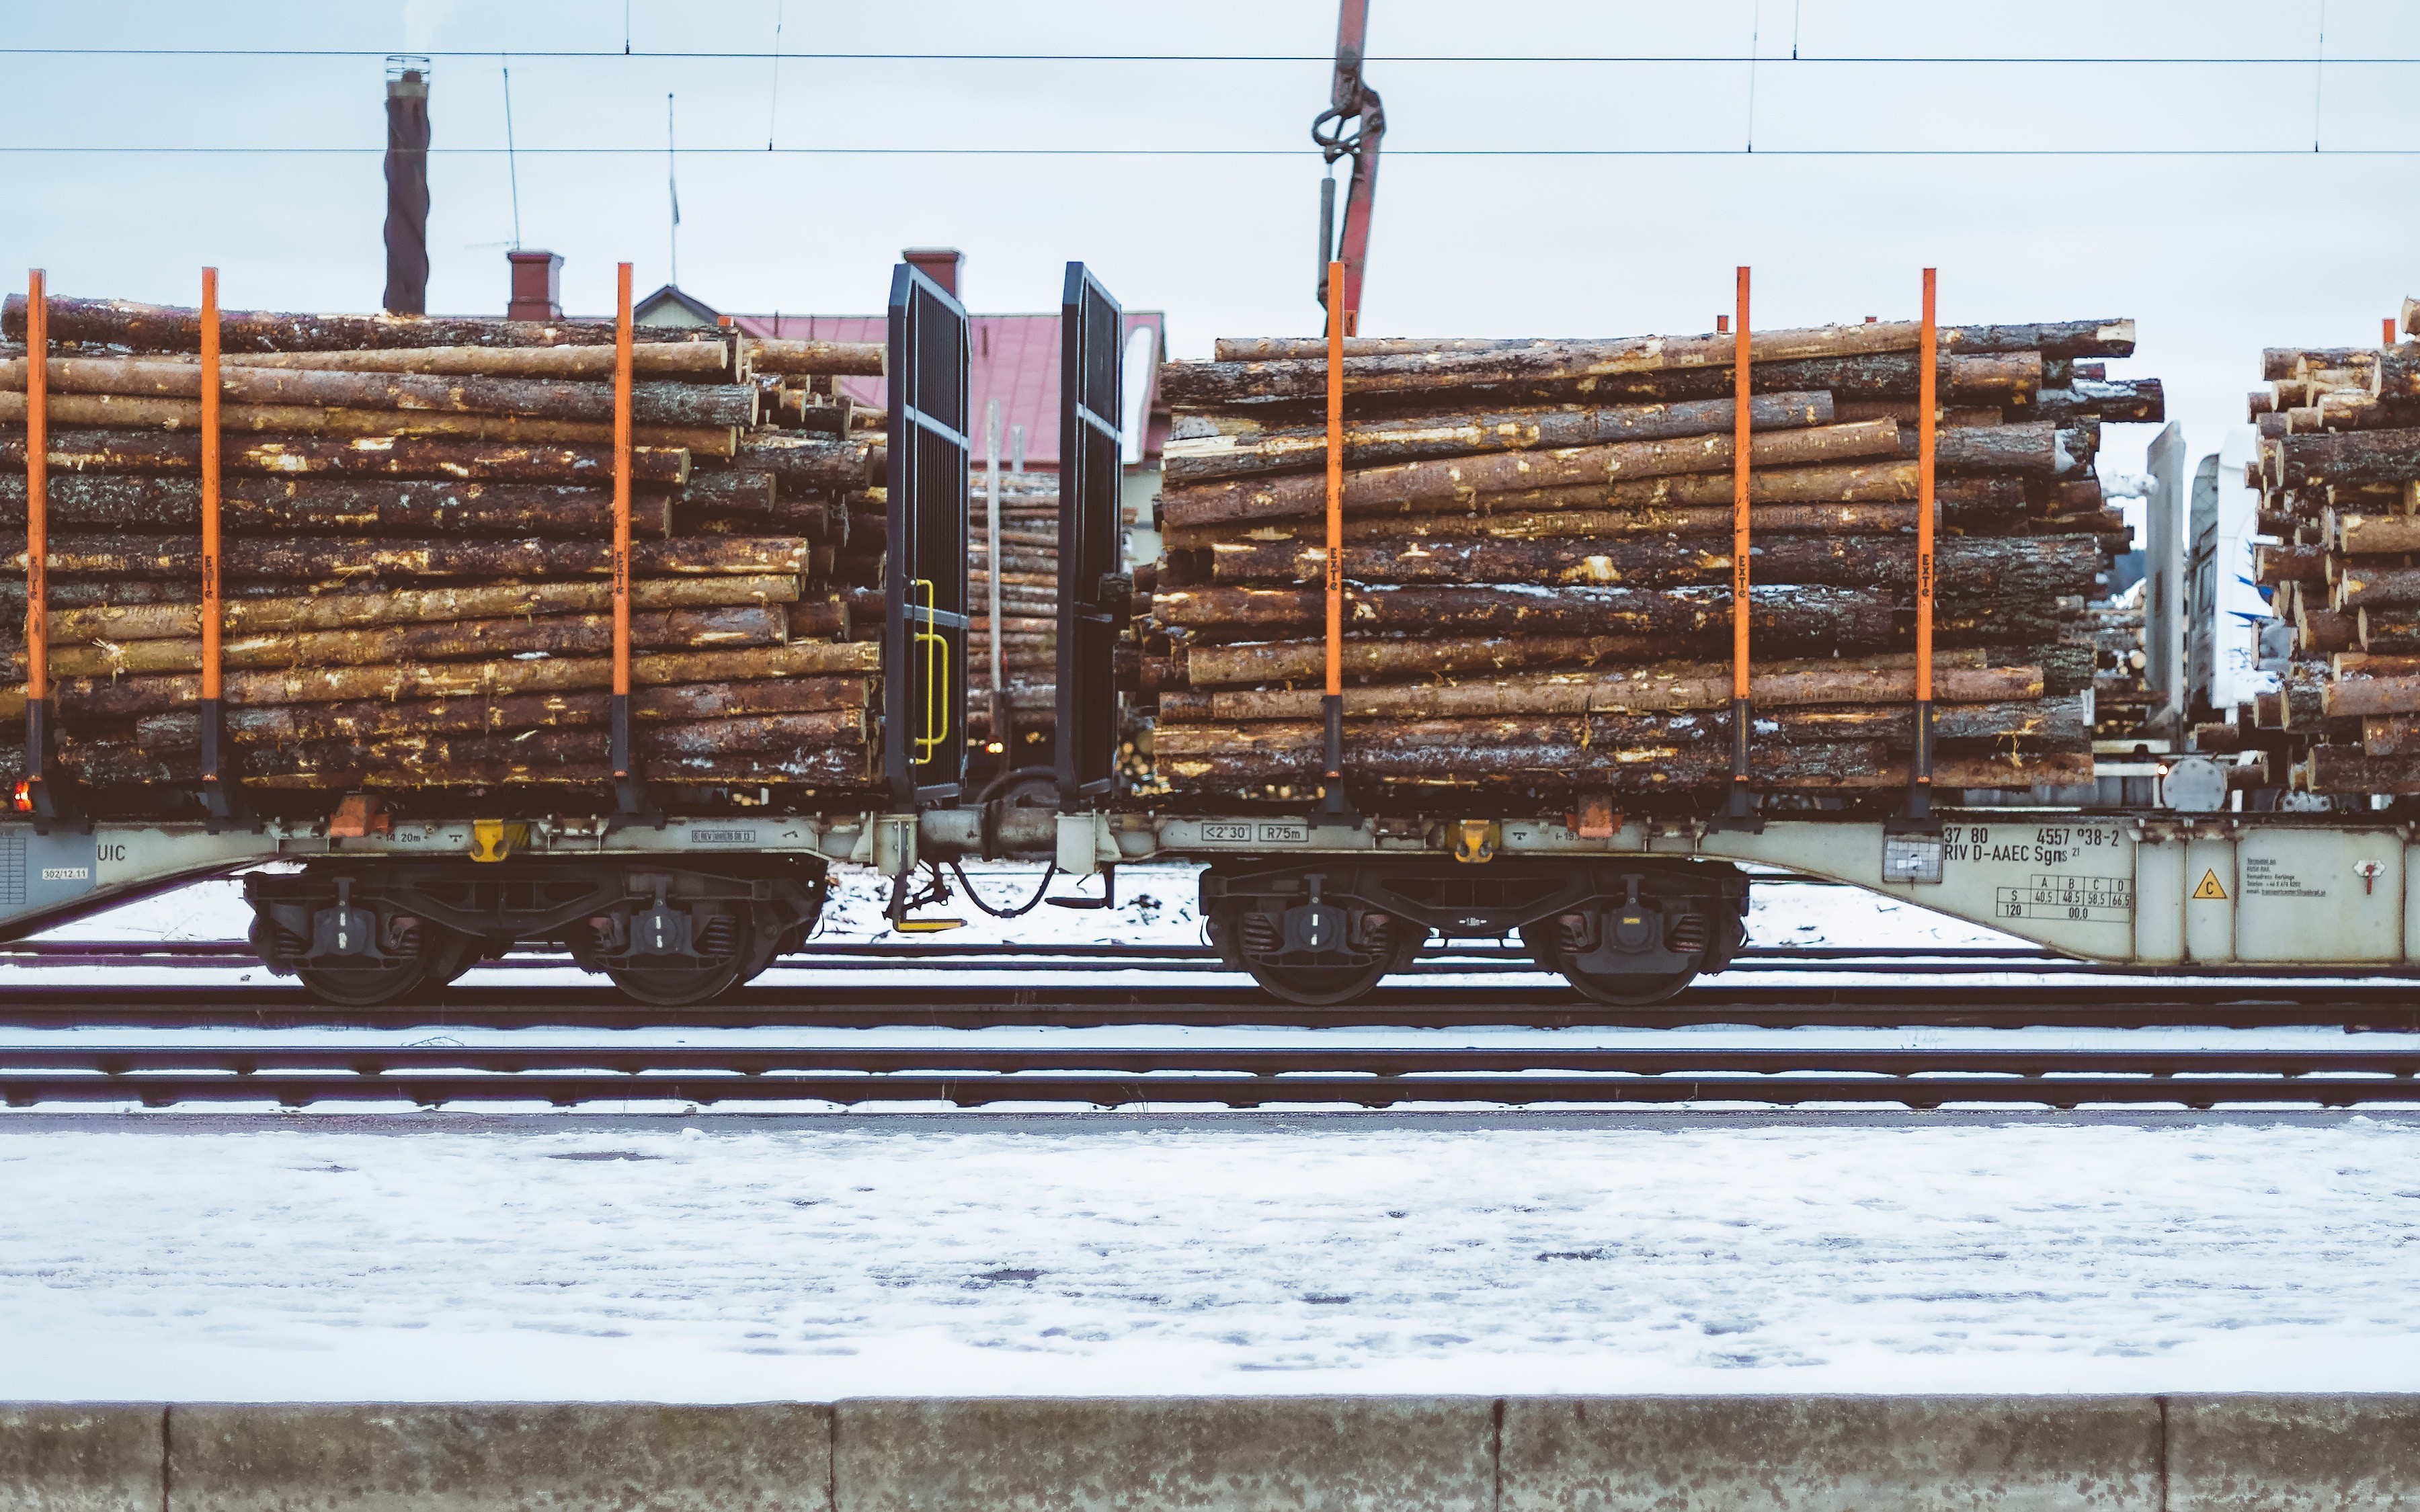 Microservices Architecture: The Importance of Centralized Logging